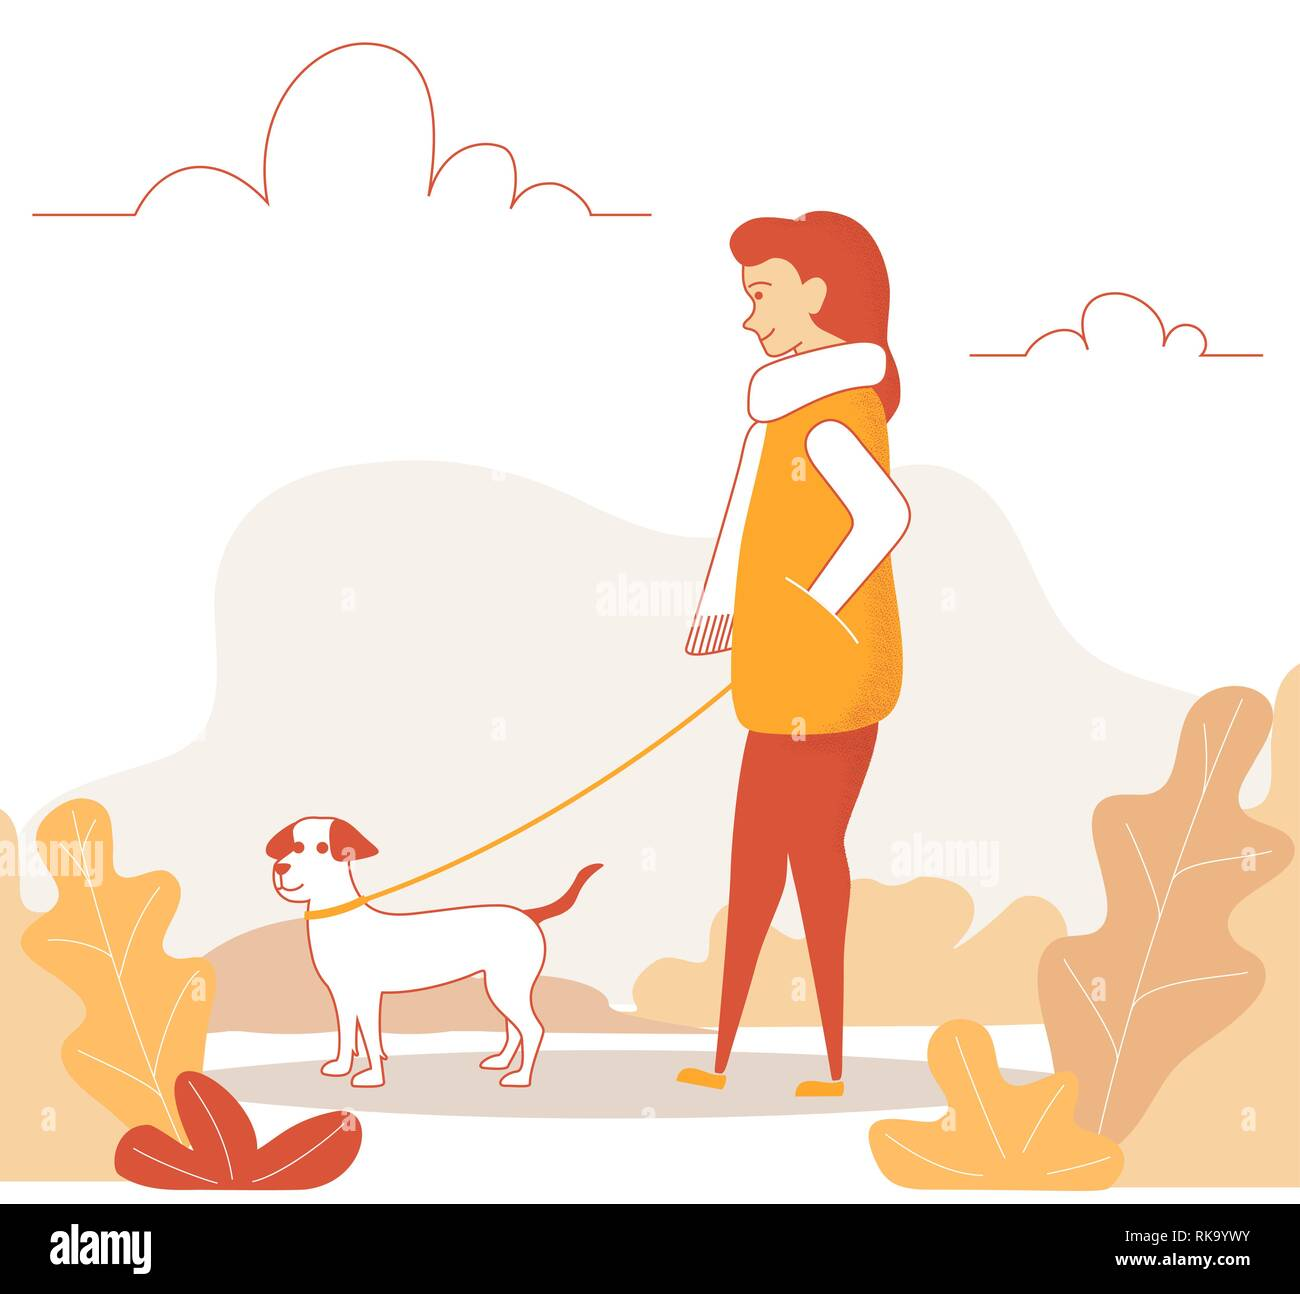 Line art woman character walking with cute dog. Girl walking in autumn park with her dog. Vector illustration in a flat style - Stock Vector